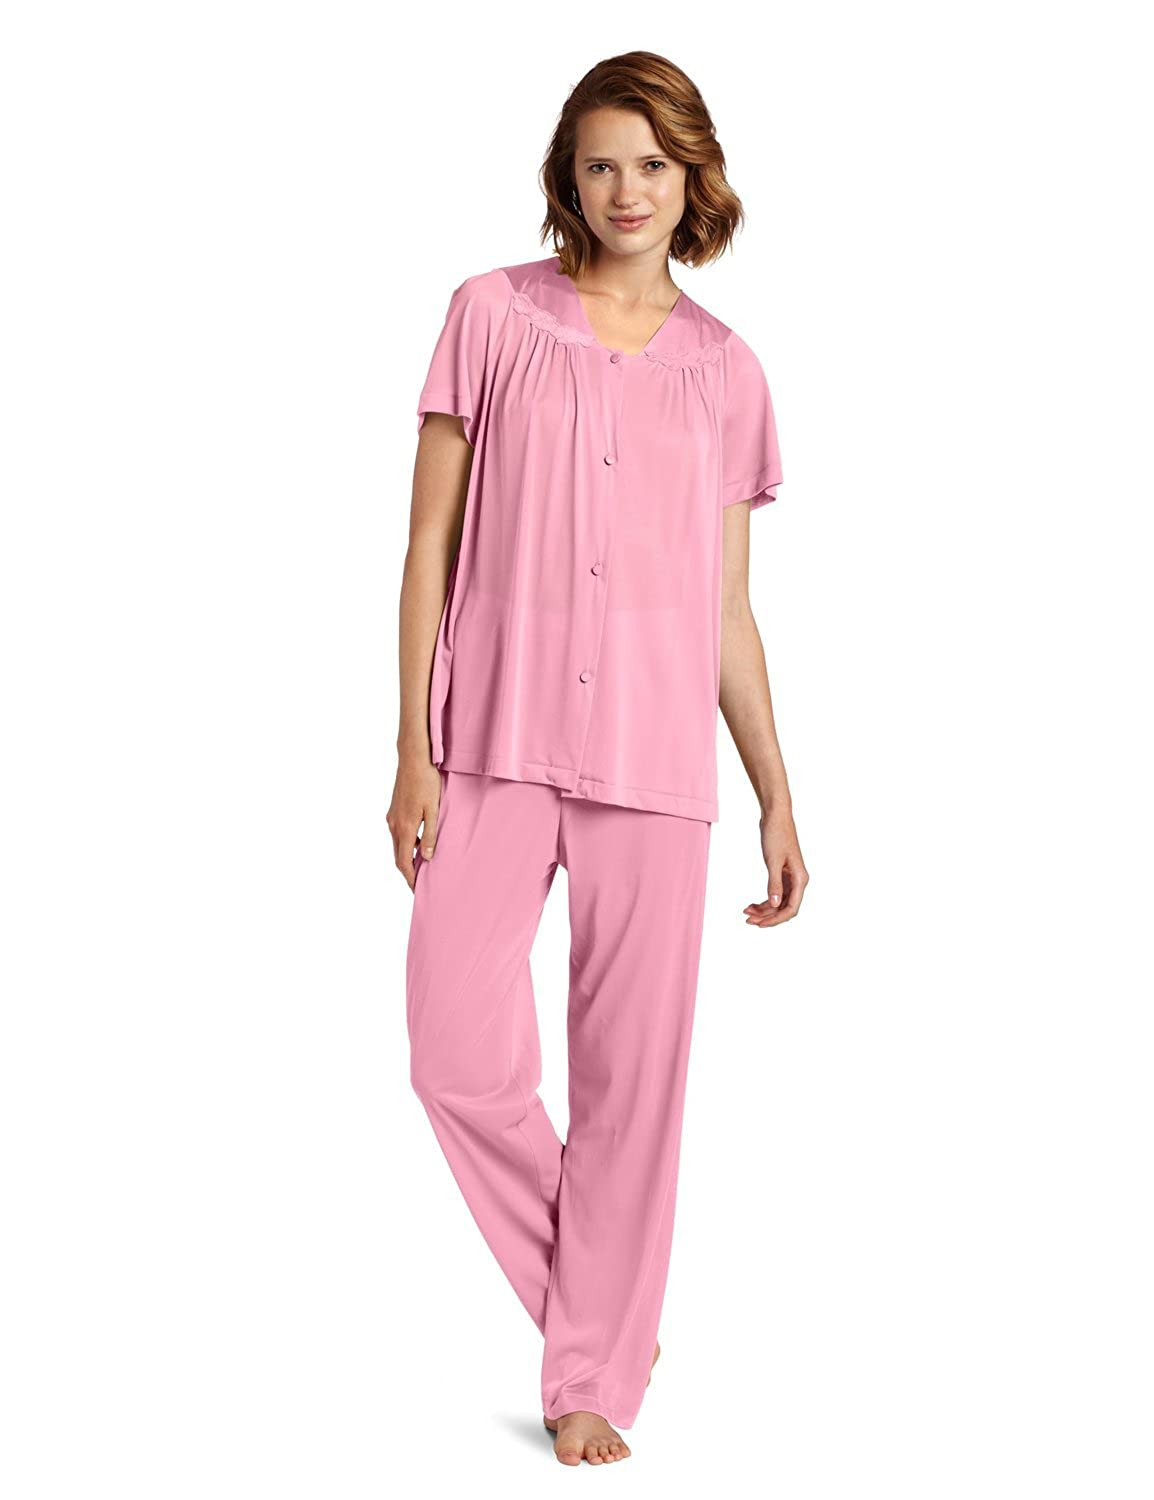 Vanity Fair Colortura Sleepwear Women`s Short-Sleeve Pajama Set, VF-90107,  XL At Amazon Women's Clothing Store: